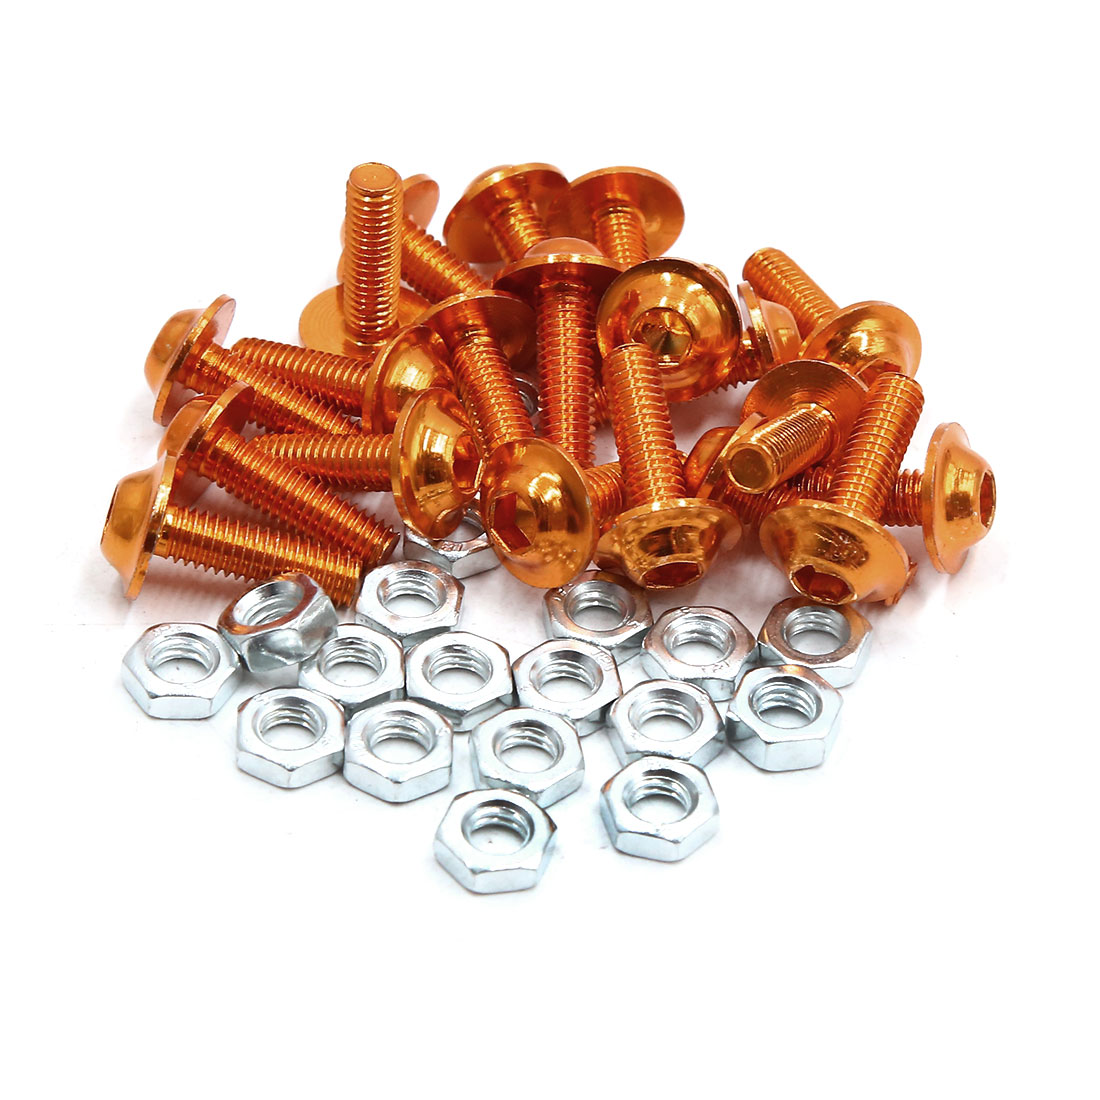 20pcs M6 Orange Aluminum Alloy Hex Socket Head Motorcycle Bolts Screws Nuts